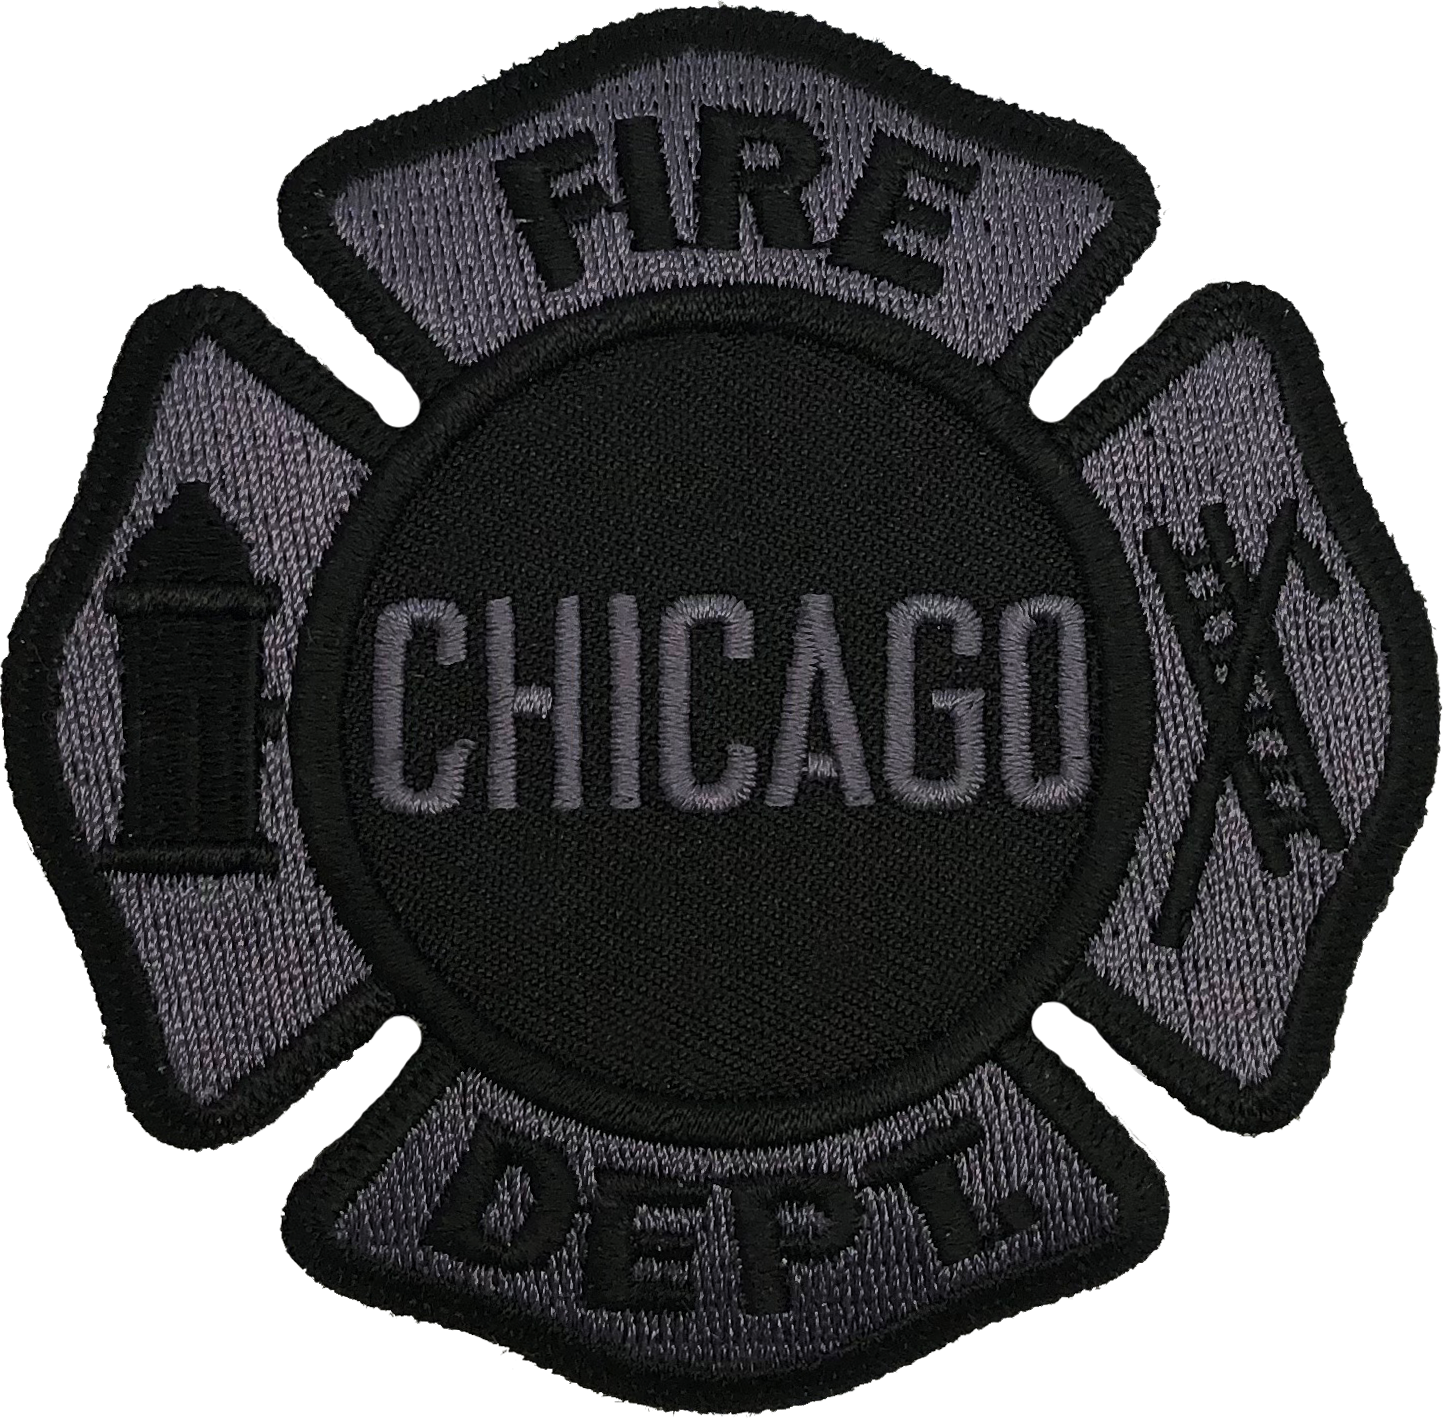 chicago fire department maltese patch subdued chicago cop shop chicago fire department maltese patch subdued